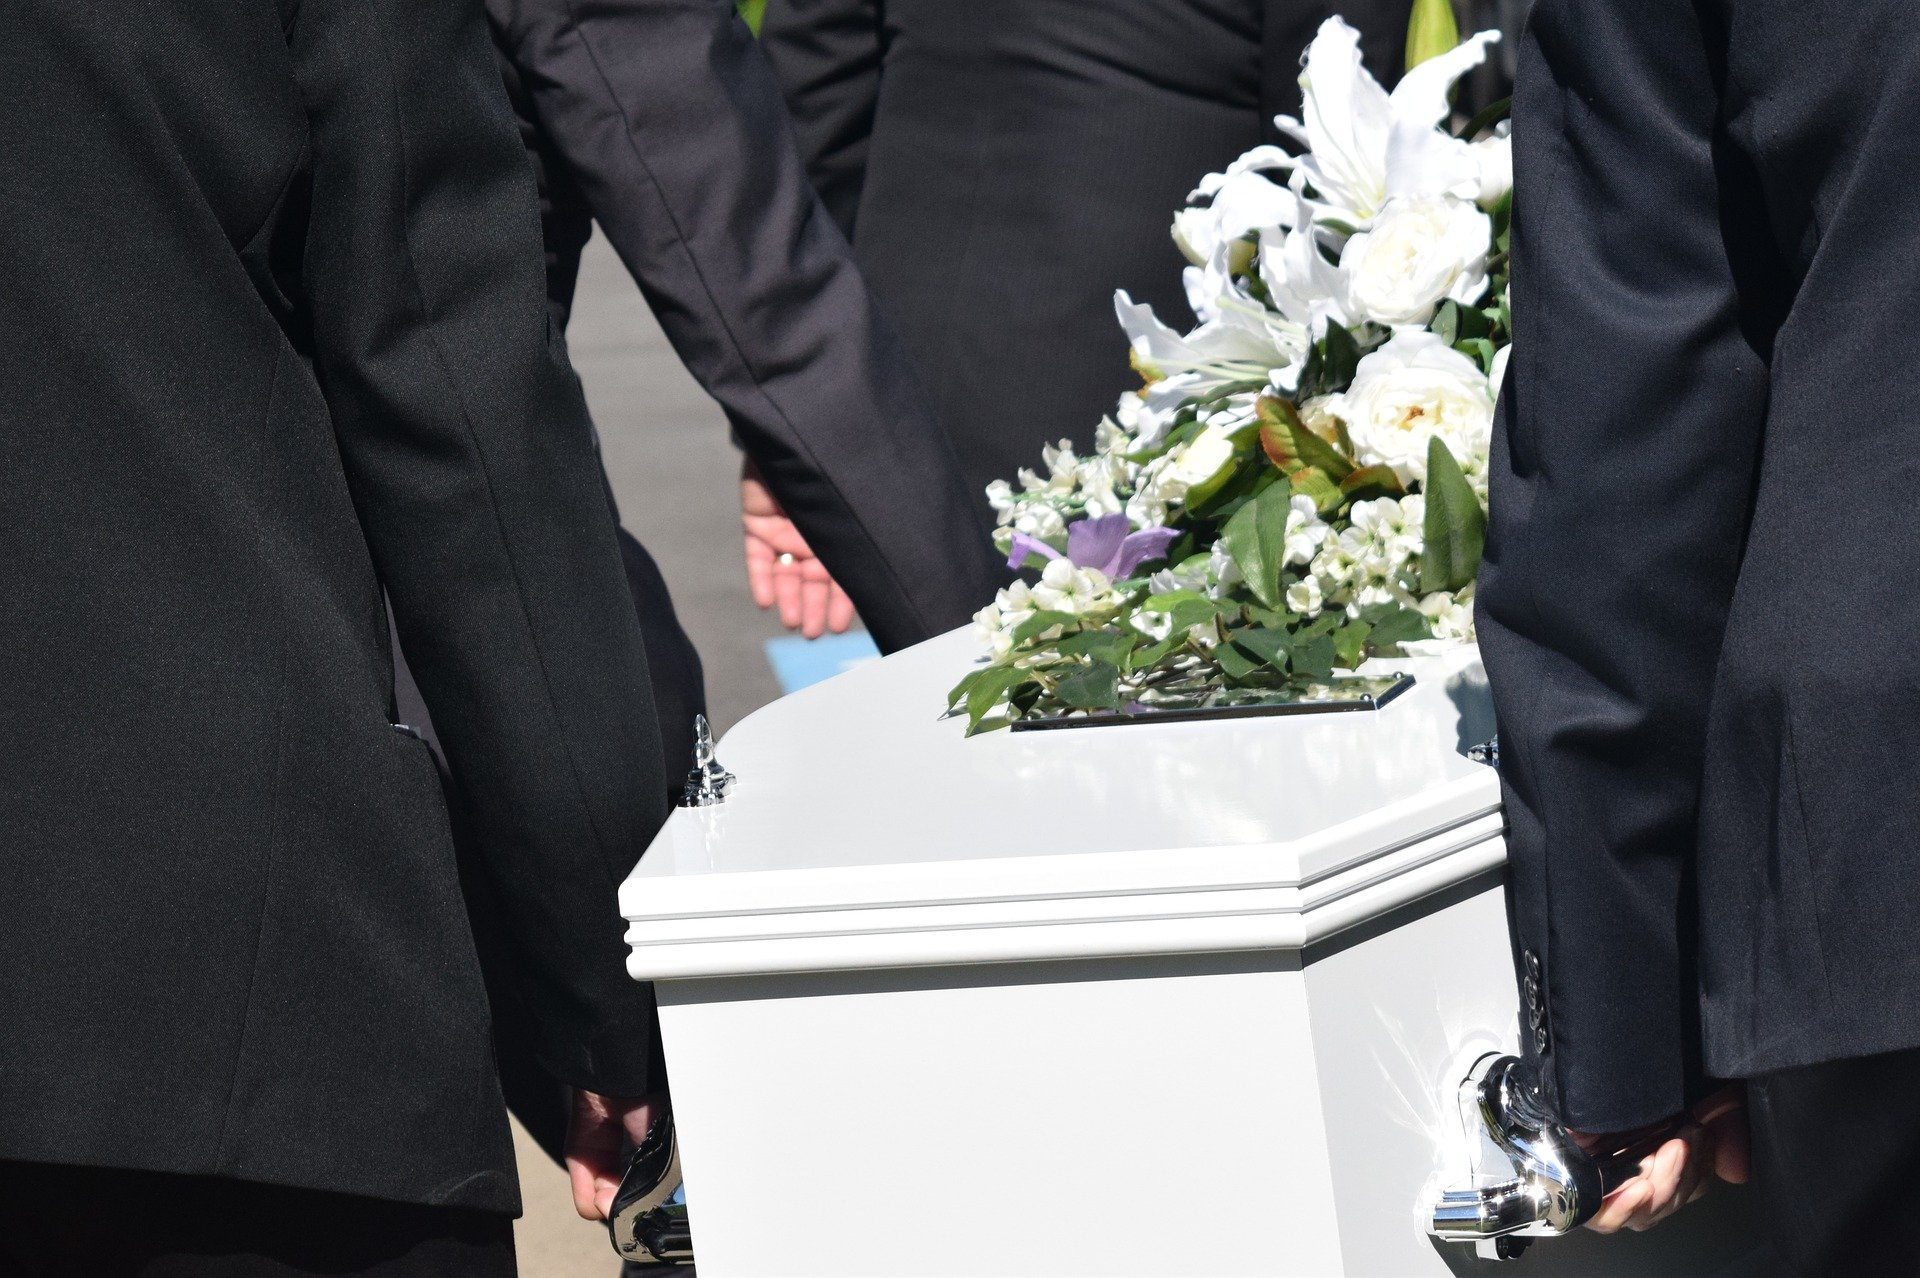 Pallbearers carrying a casket at a funeral. | Source: carolynabooth/Pixabay